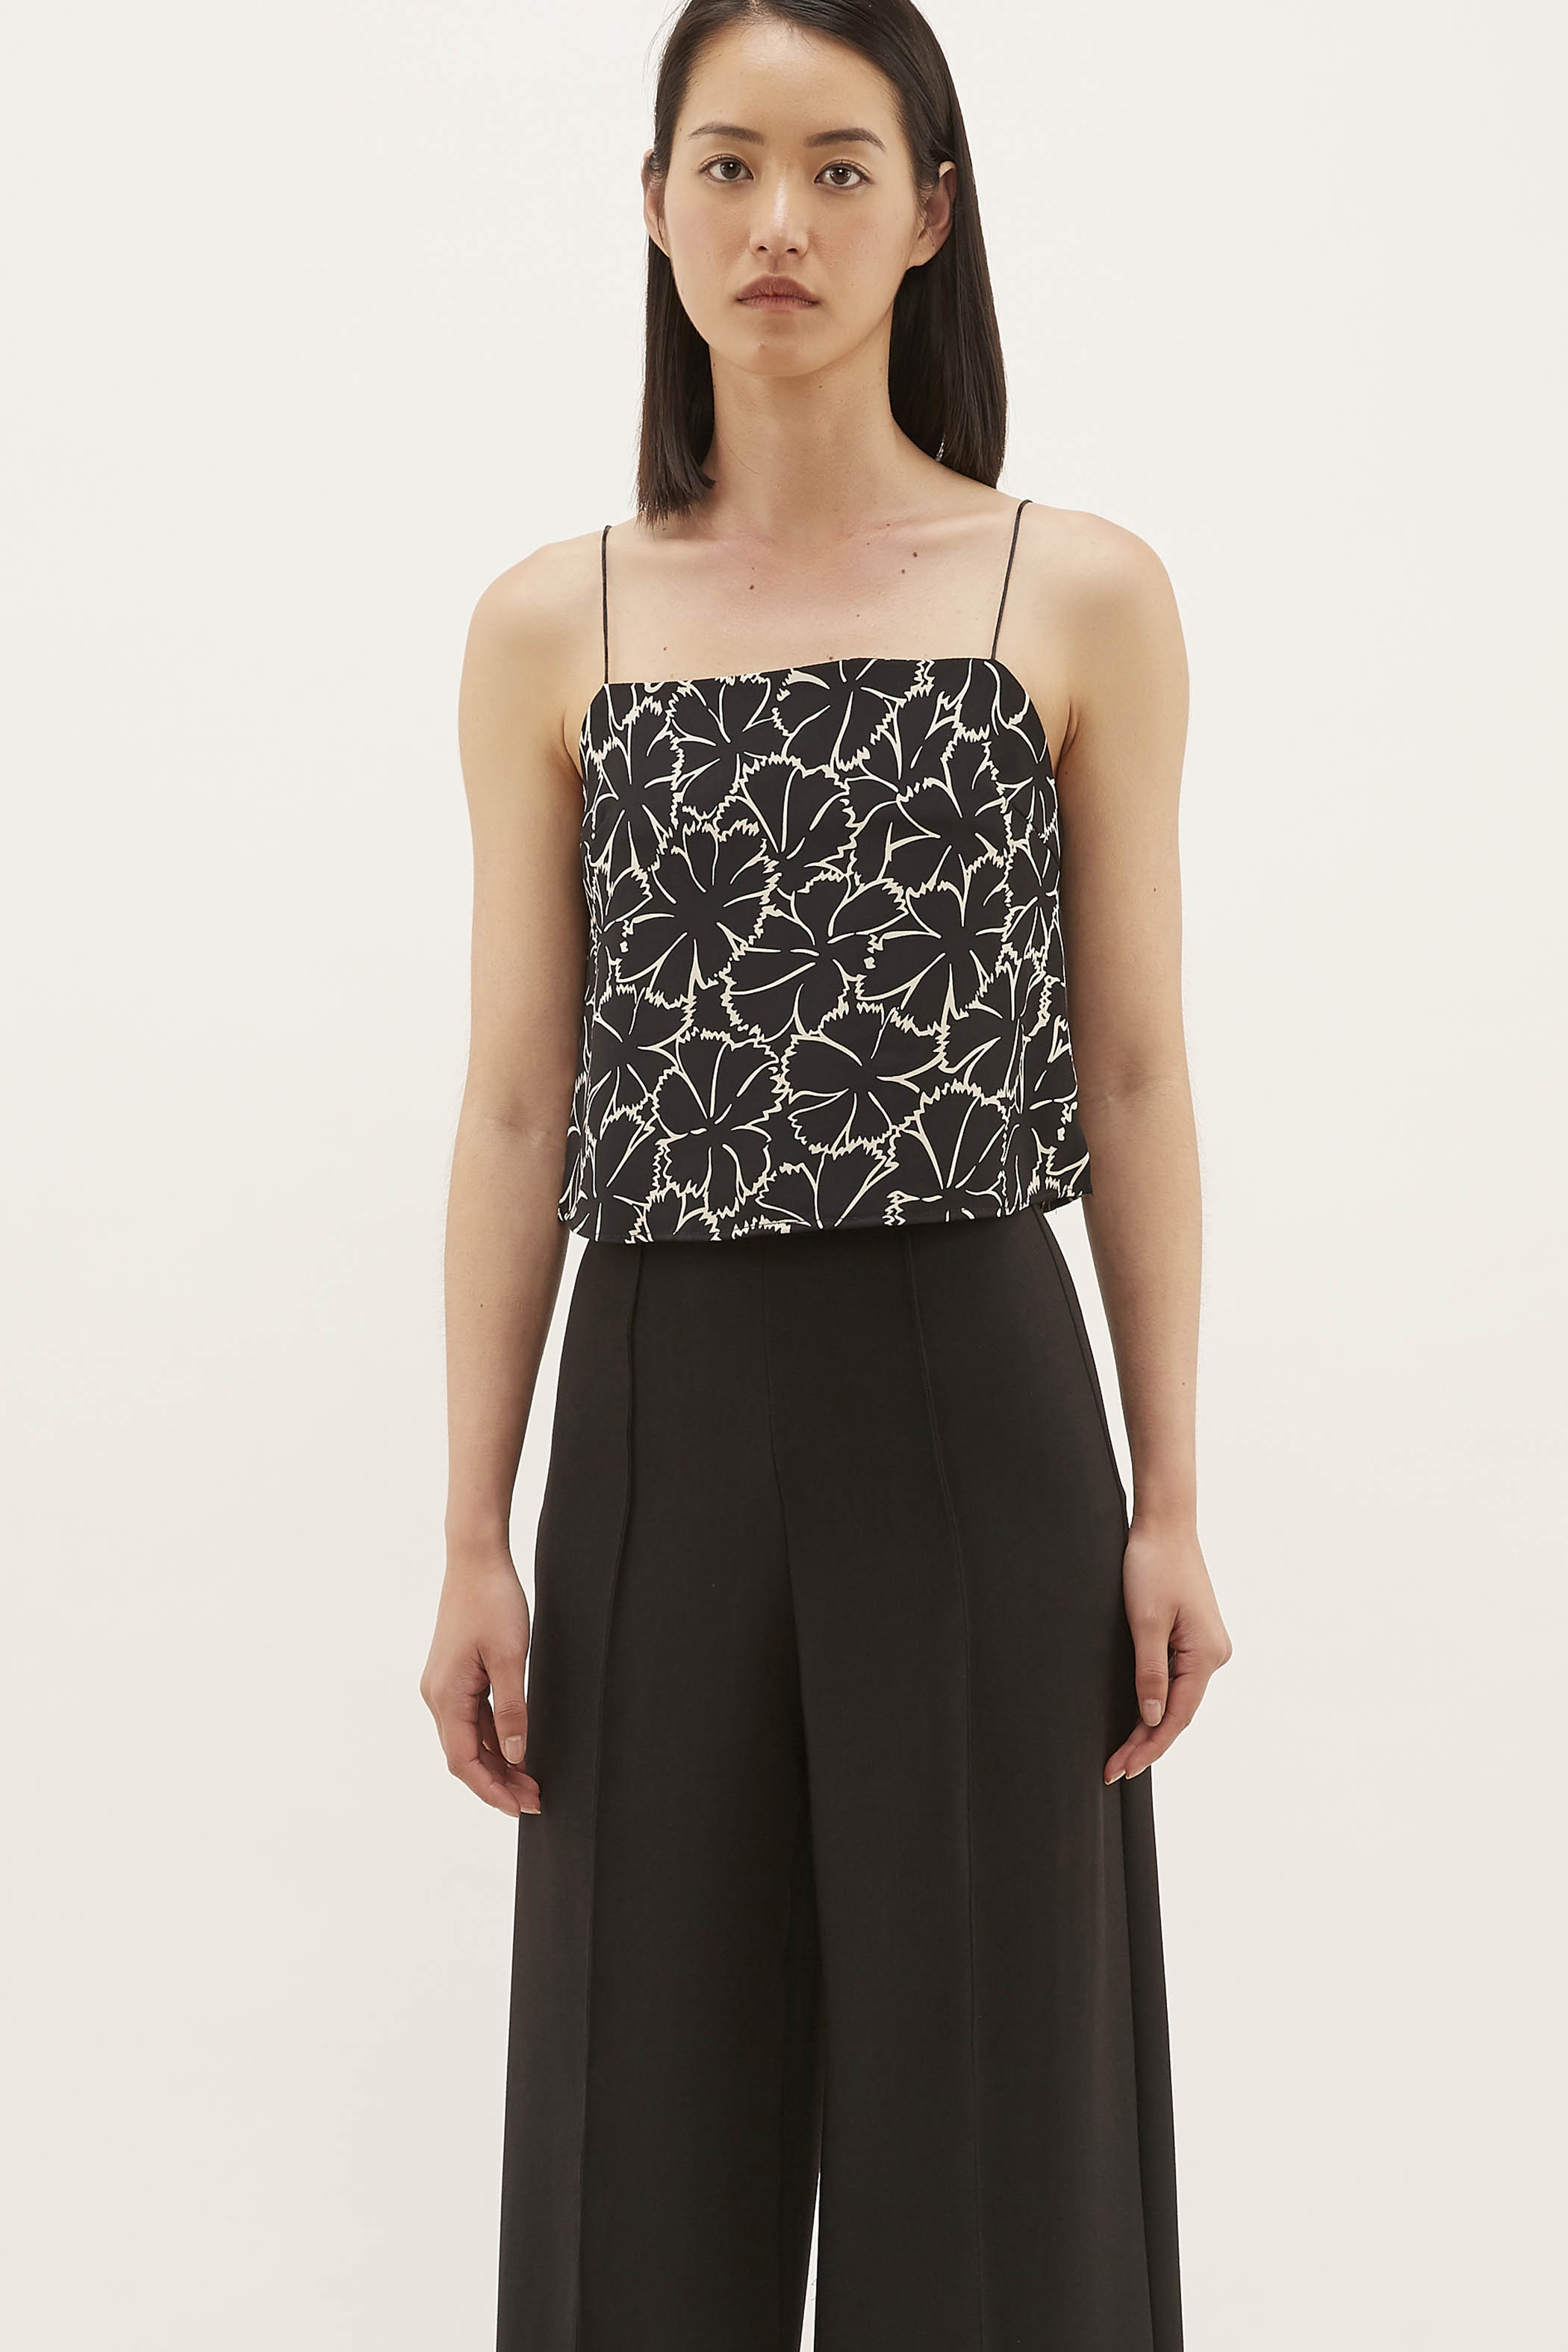 Mayah Rope-strap Camisole